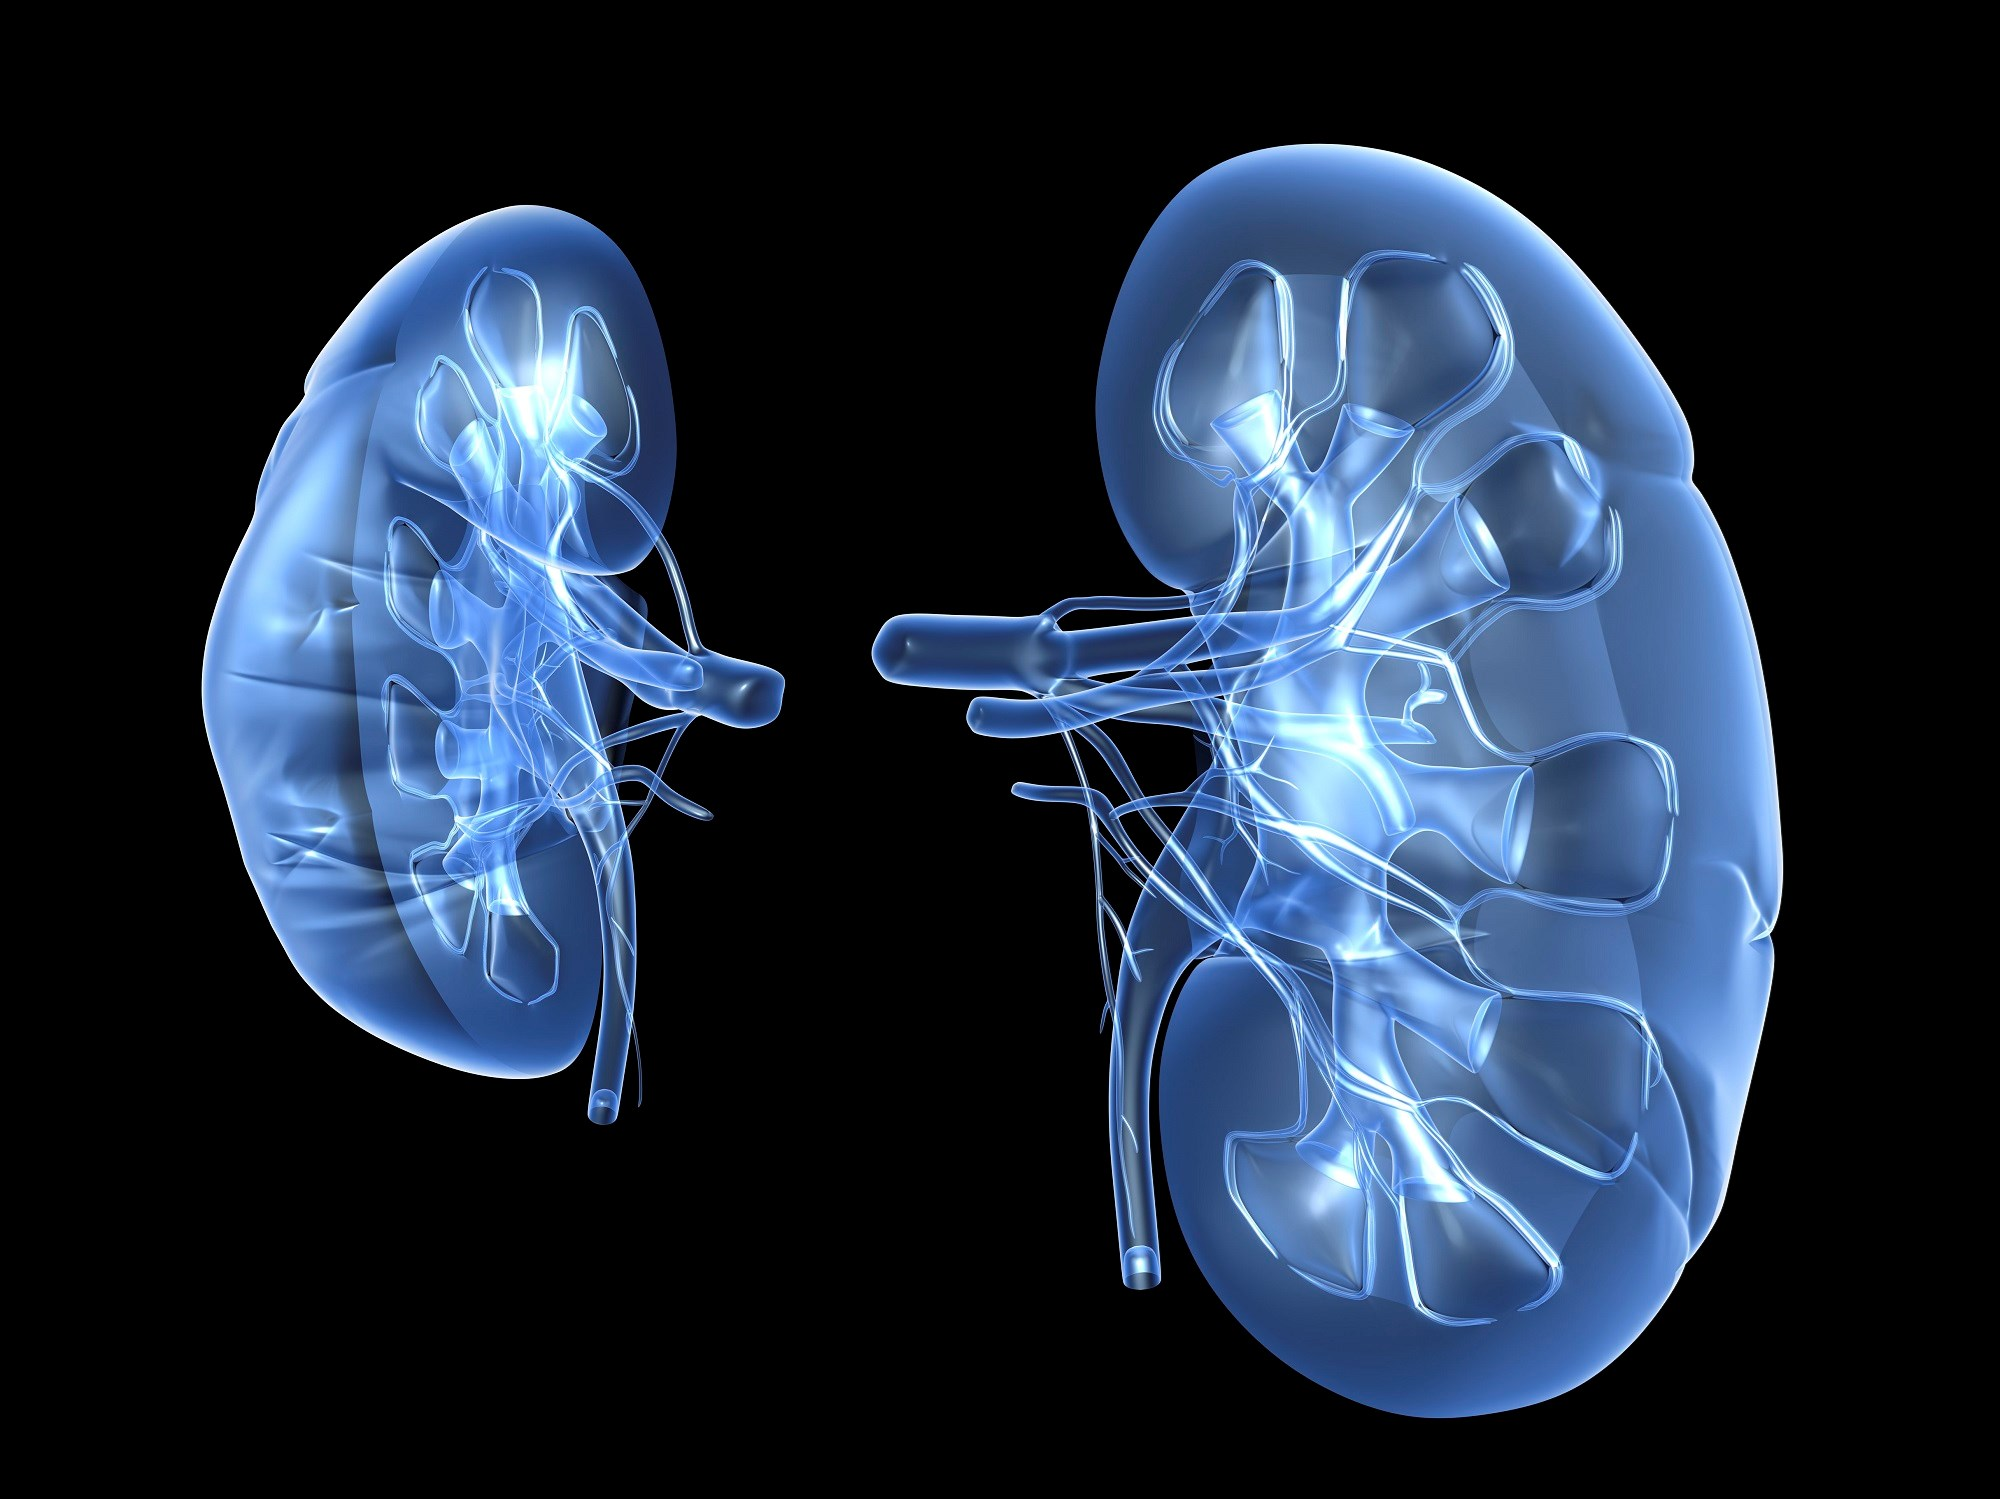 Behavioral Executive Dysfunction Associated With Chronic Kidney Disease